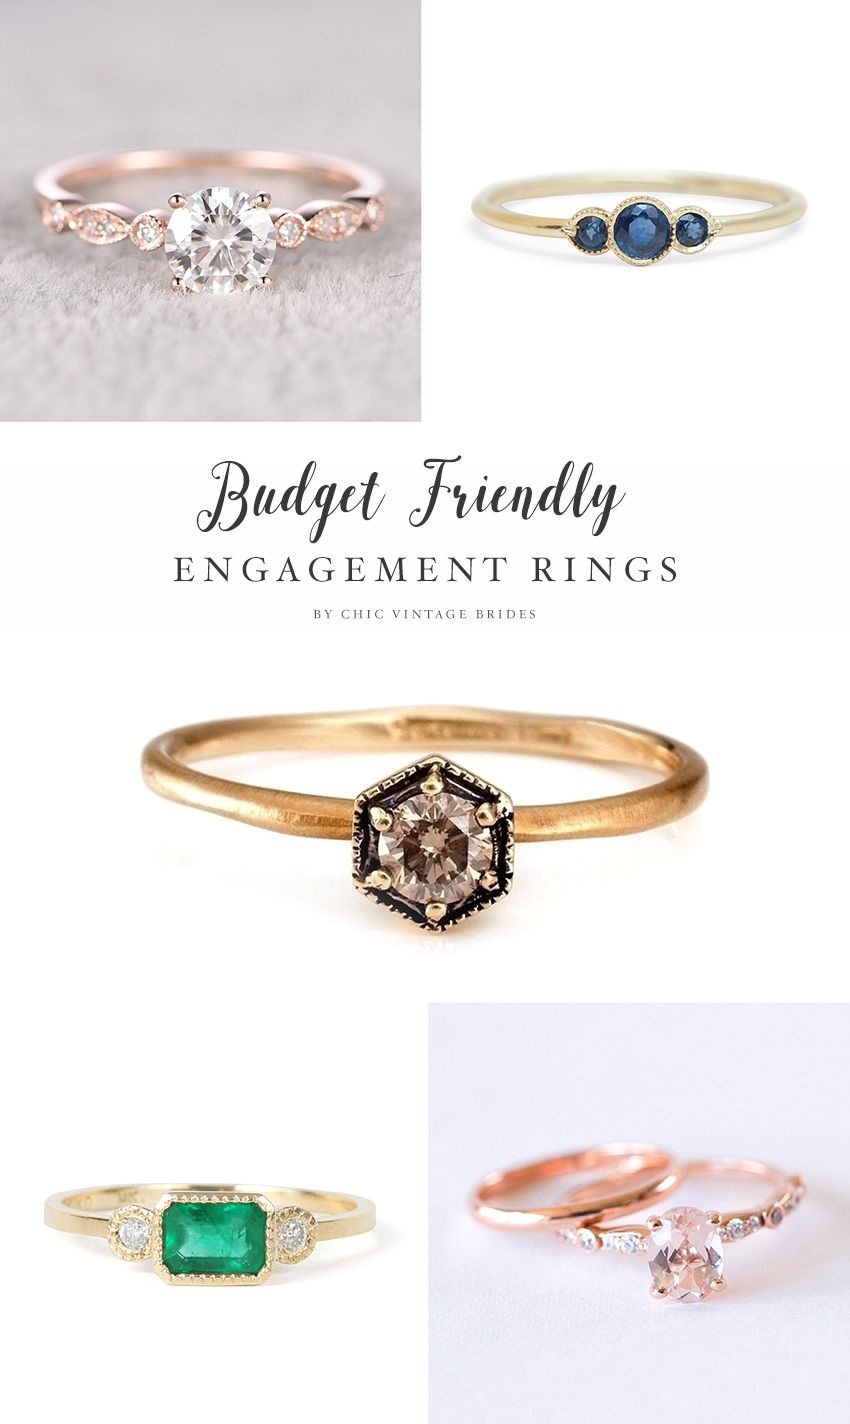 21 Engagement Rings EVERYONE Will Swoon Over